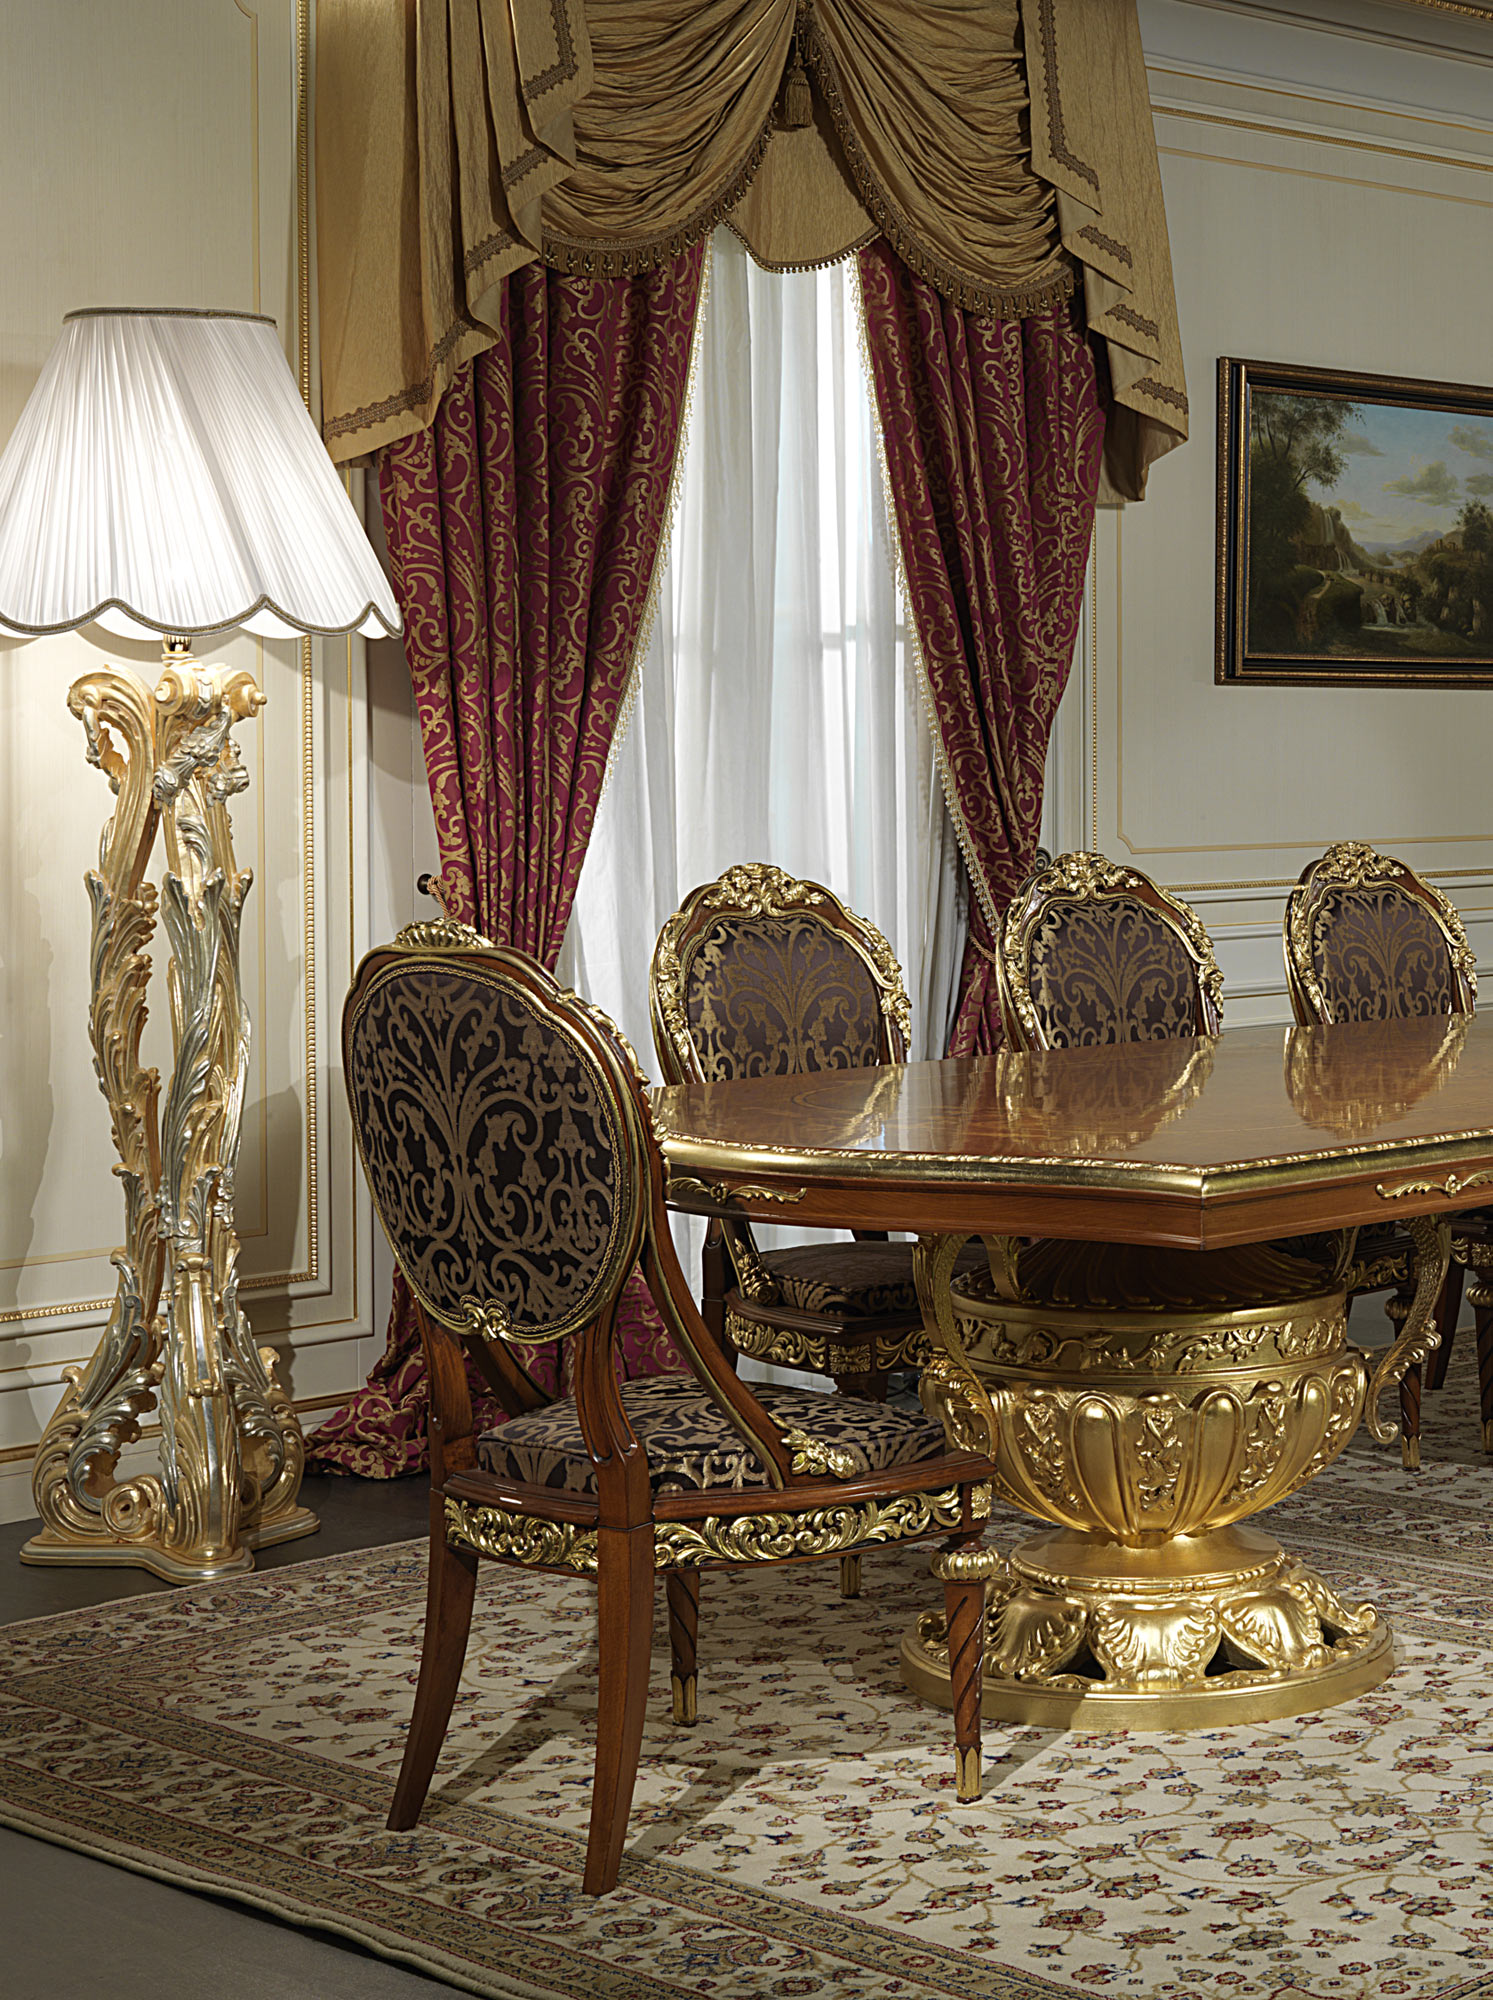 Furniture classic living room versailles the luxury of for Chambre louis xvi versailles